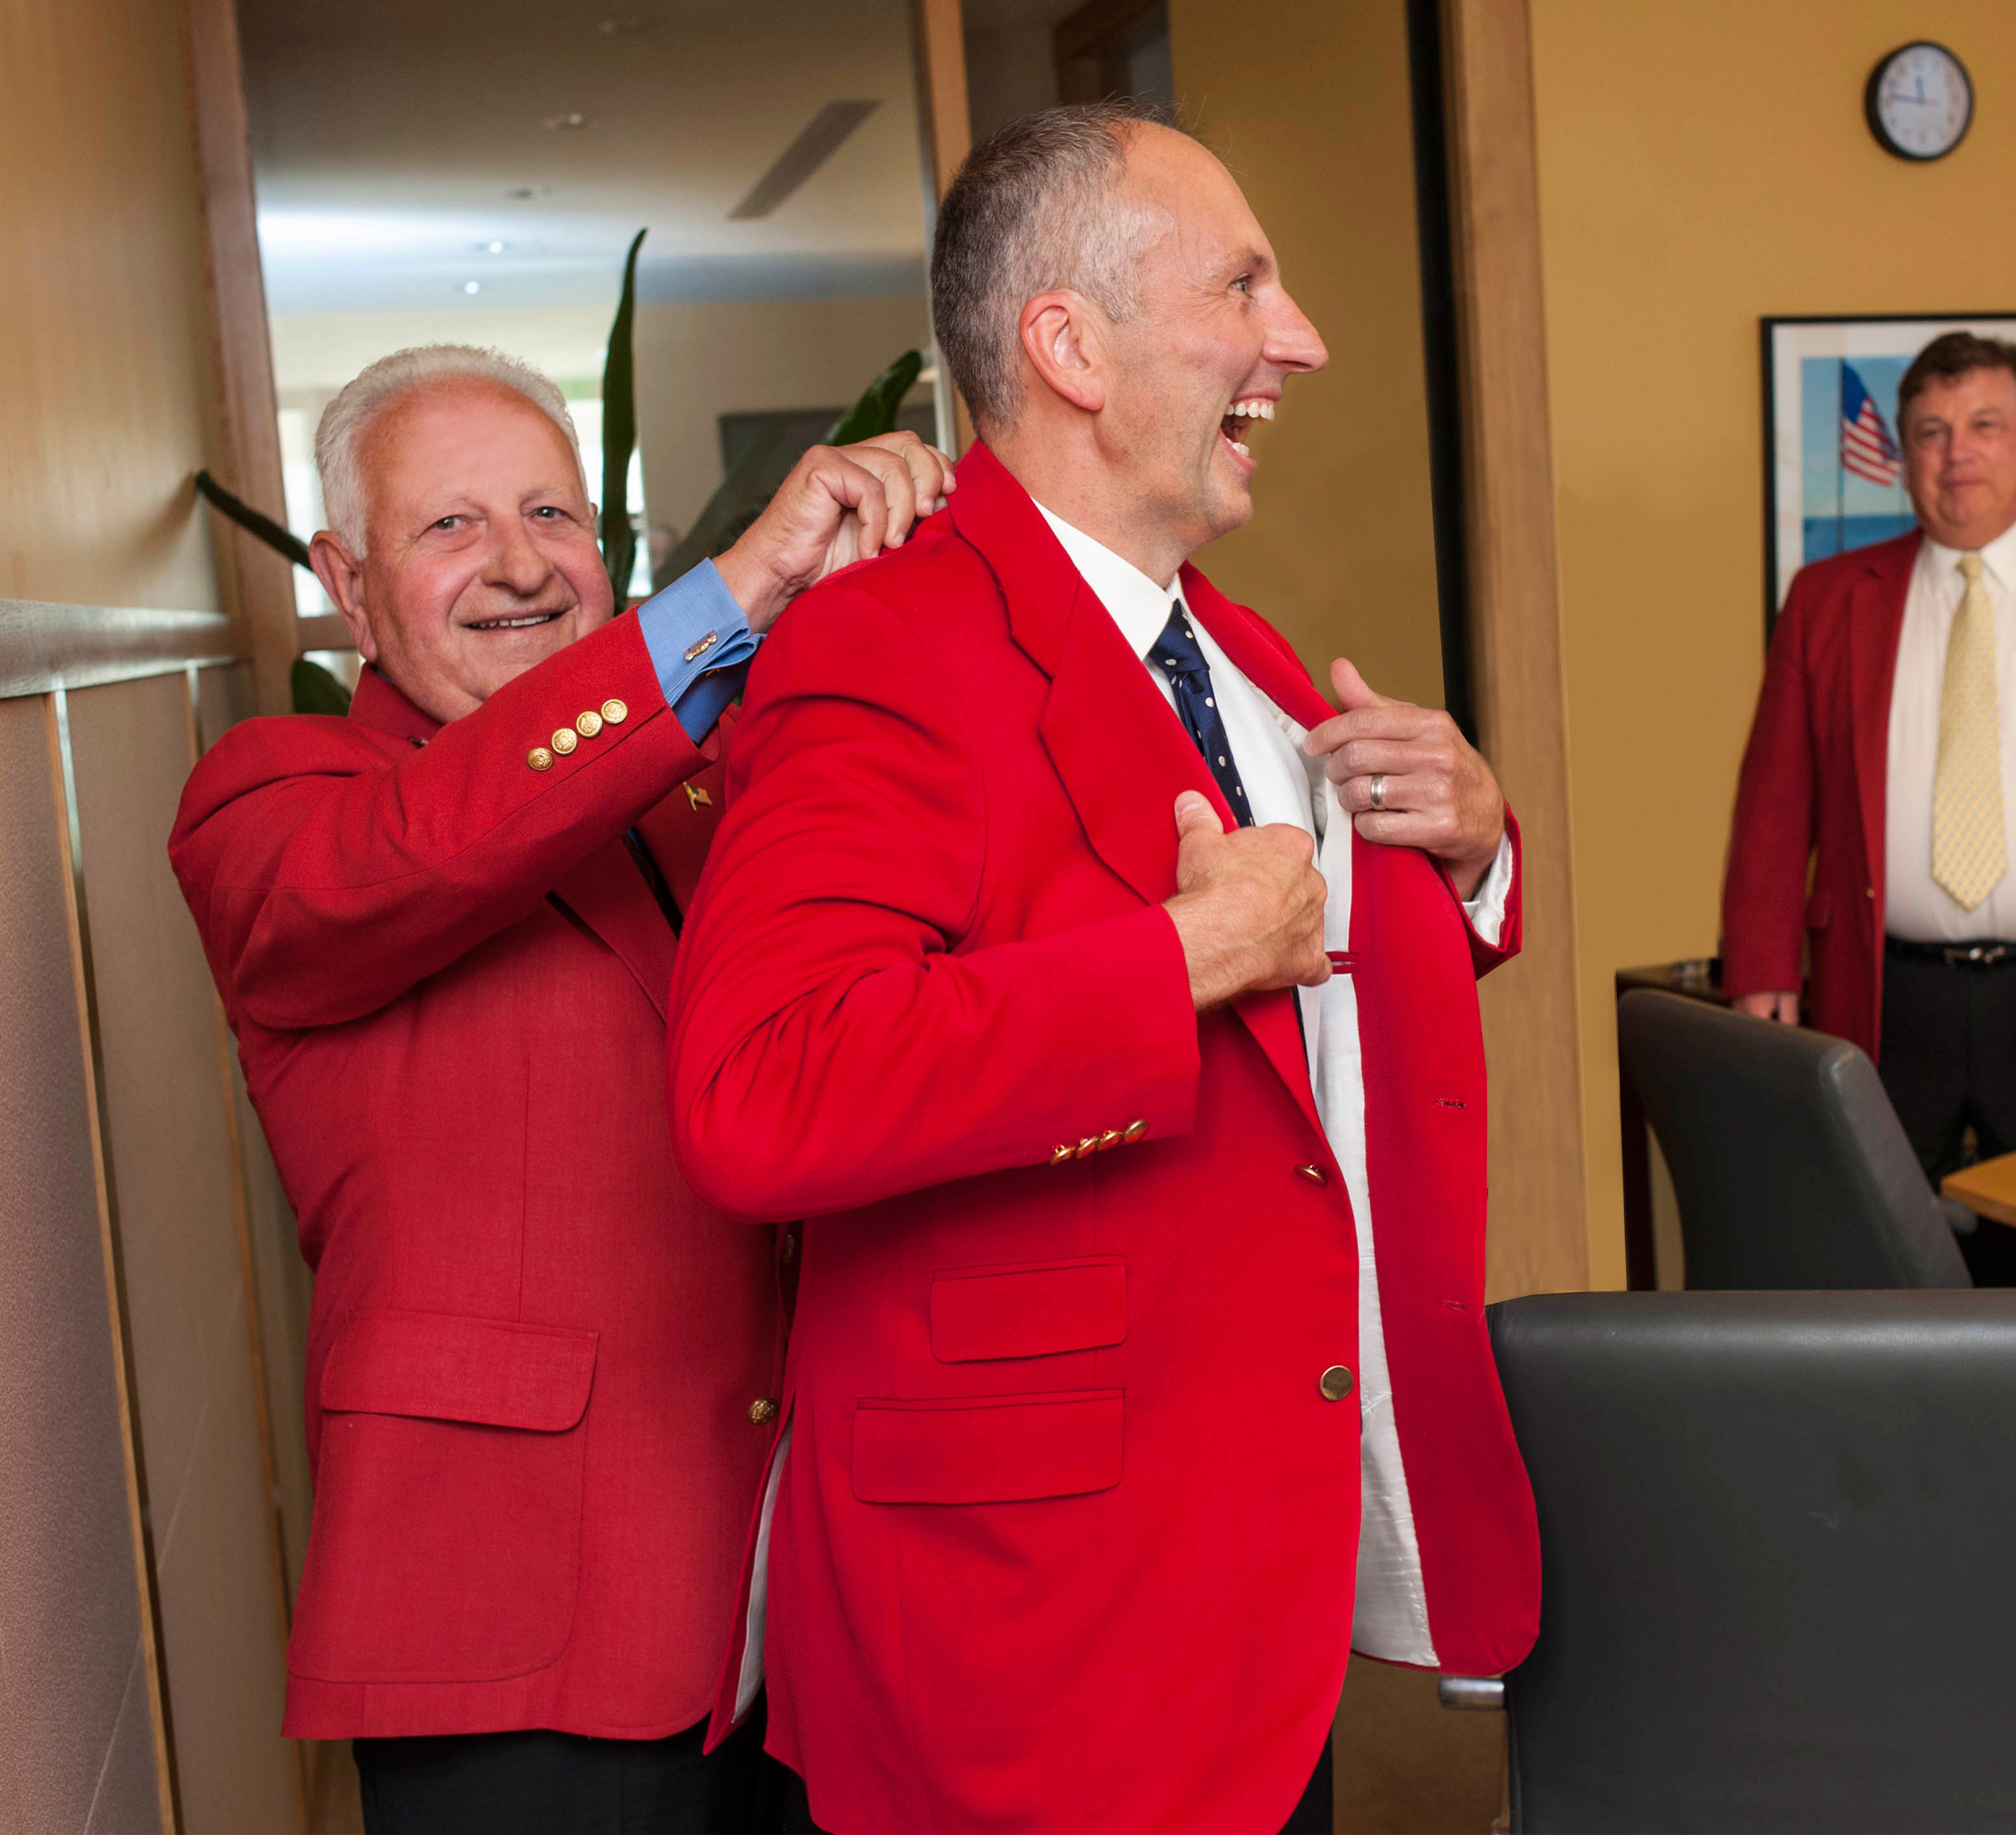 Jason receives his official red blazer from 1981 Ringmaster, his dad Andrew Julian.